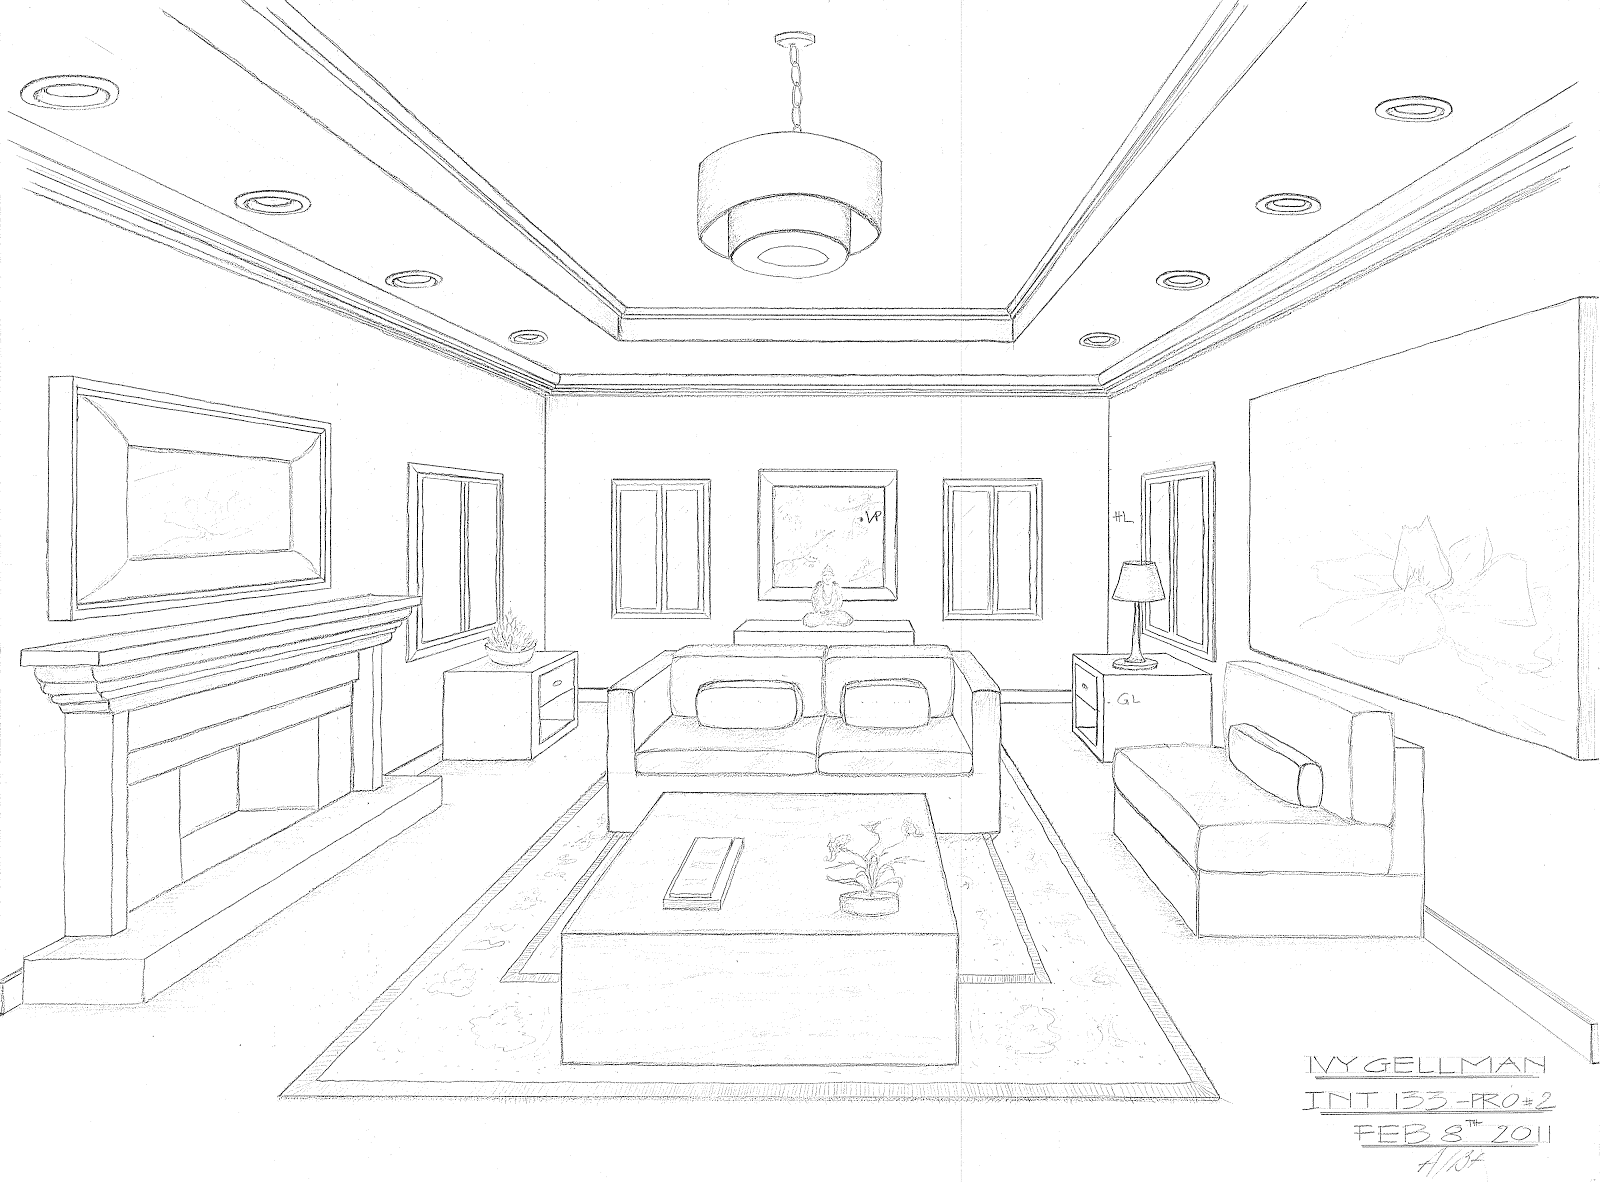 Interior design perspective drawing Room sketches interior design